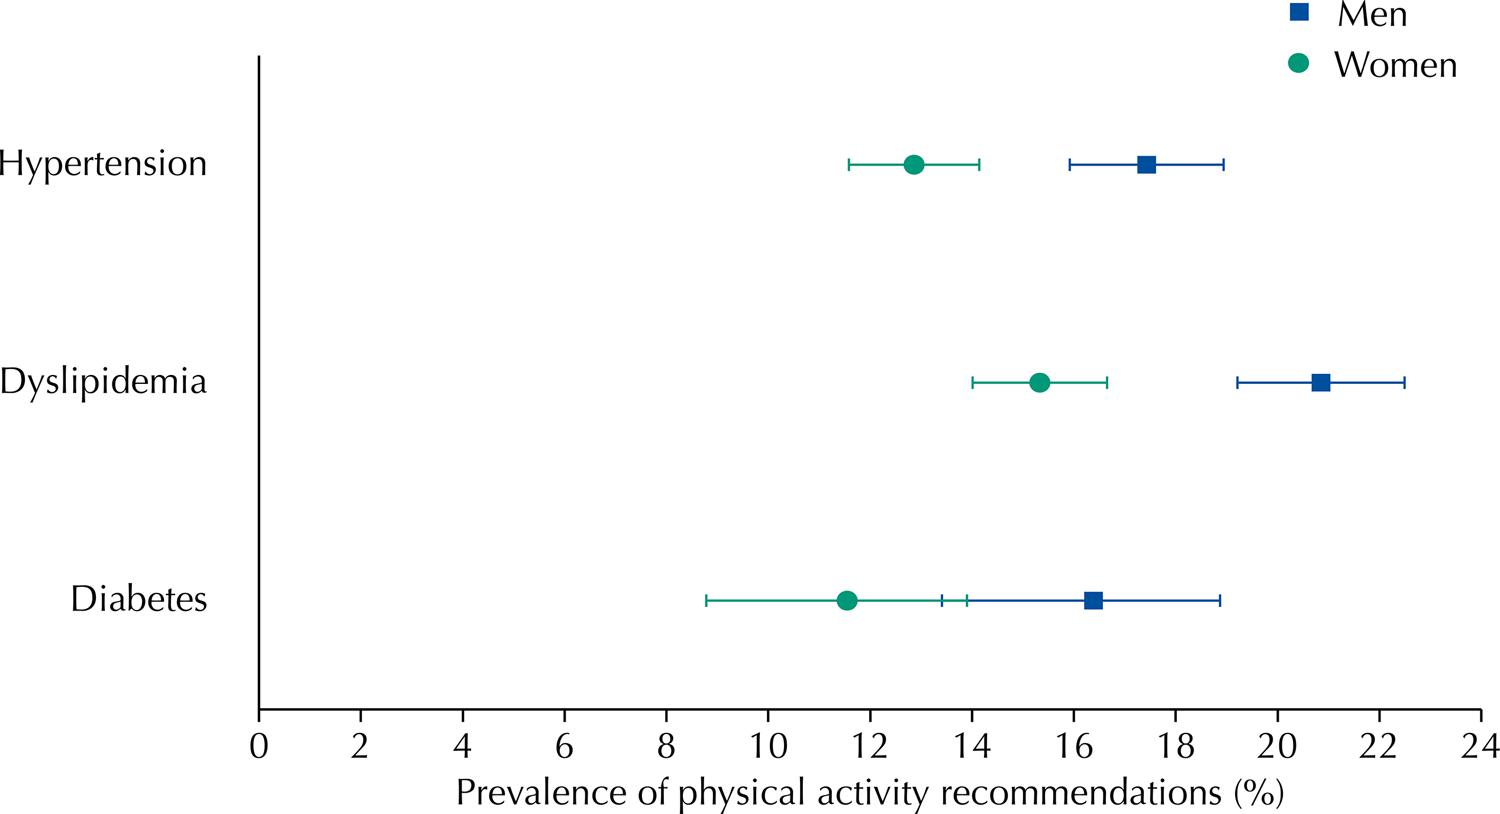 Prevalence of adherence to physical activity recommendations by gender.